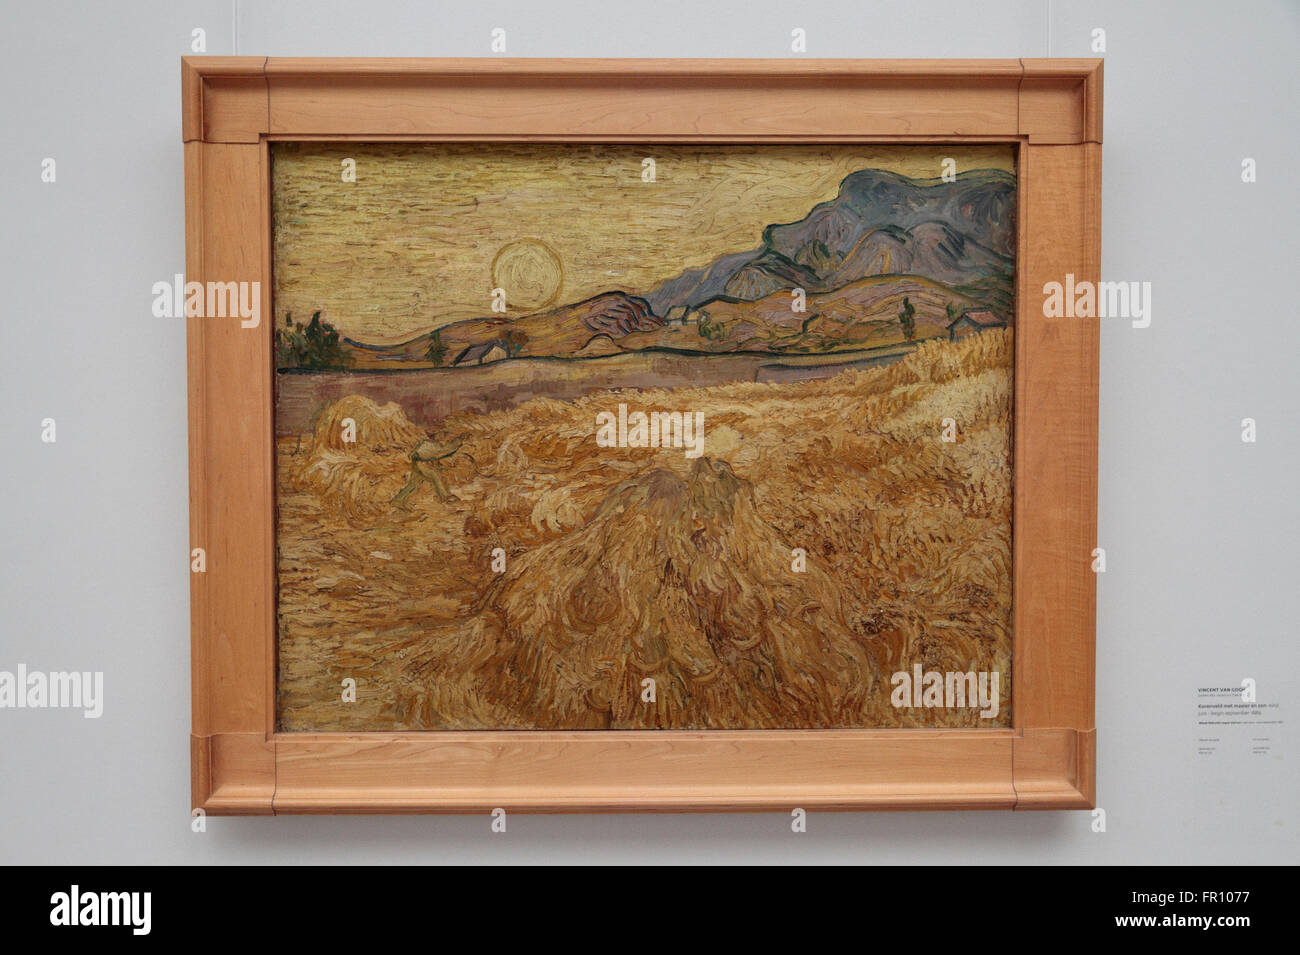 'Wheat field with reaper and sun' by Vincent van Gogh in the Kröller-Müller Museum, Otterlo, Netherlands. - Stock Image